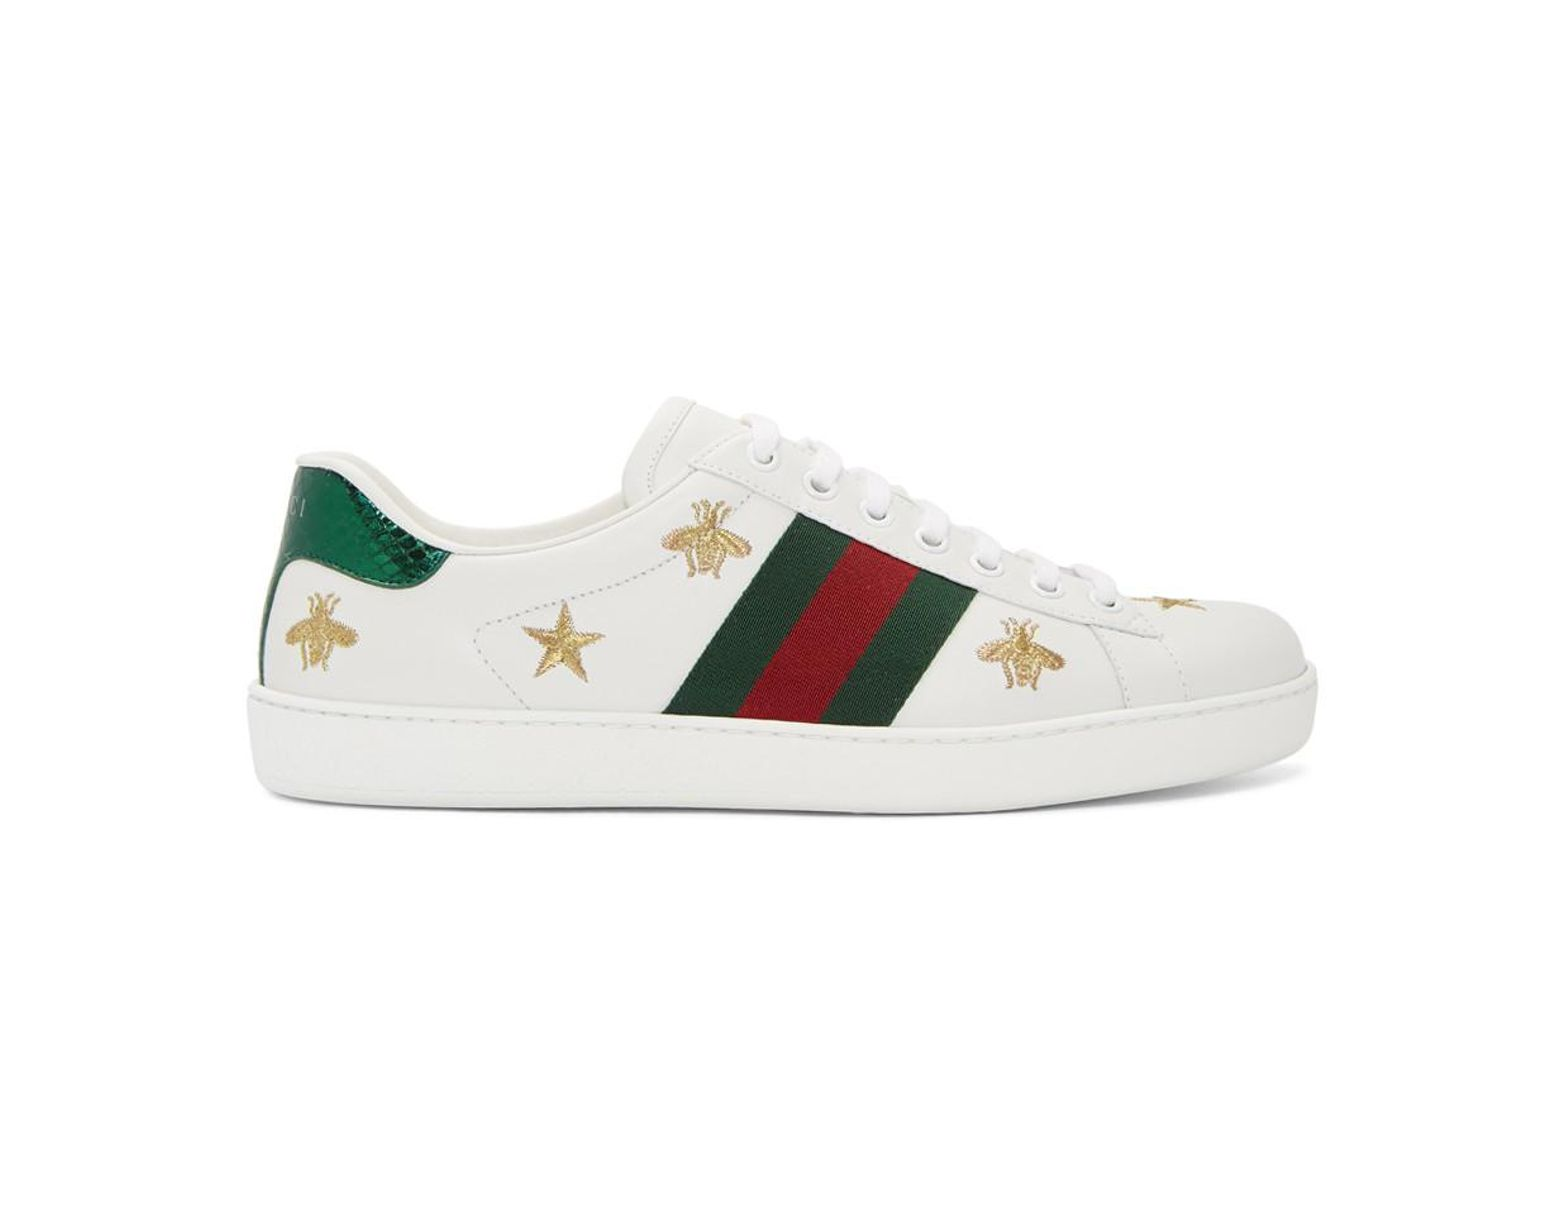 c514ffdcb Gucci White Bee And Star New Ace Sneakers in White for Men - Lyst